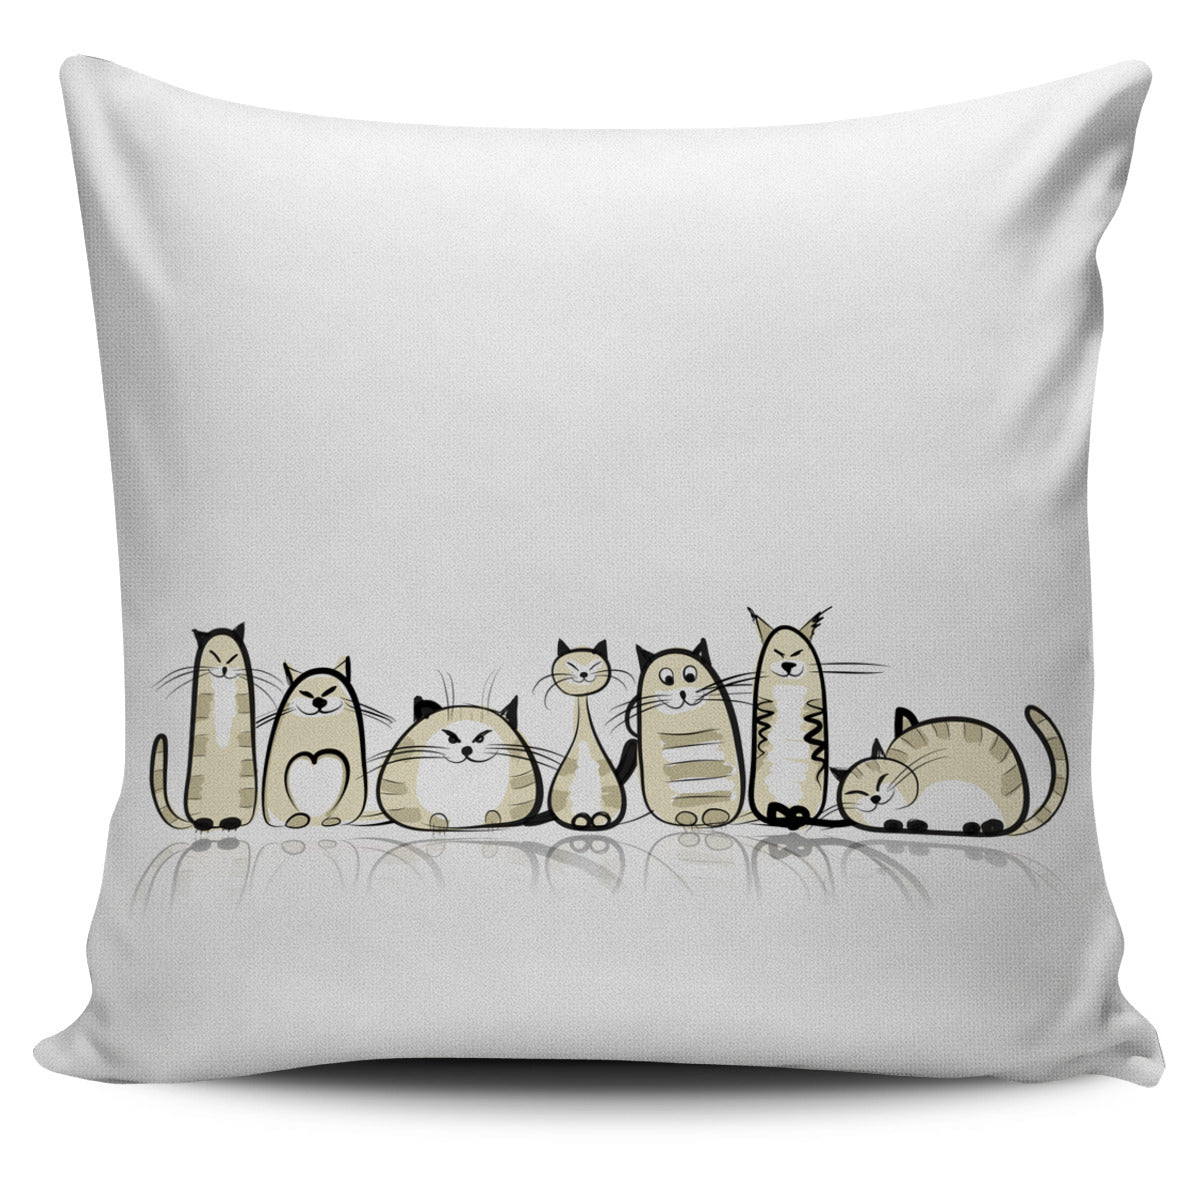 Funny Cat II Pillow Cover